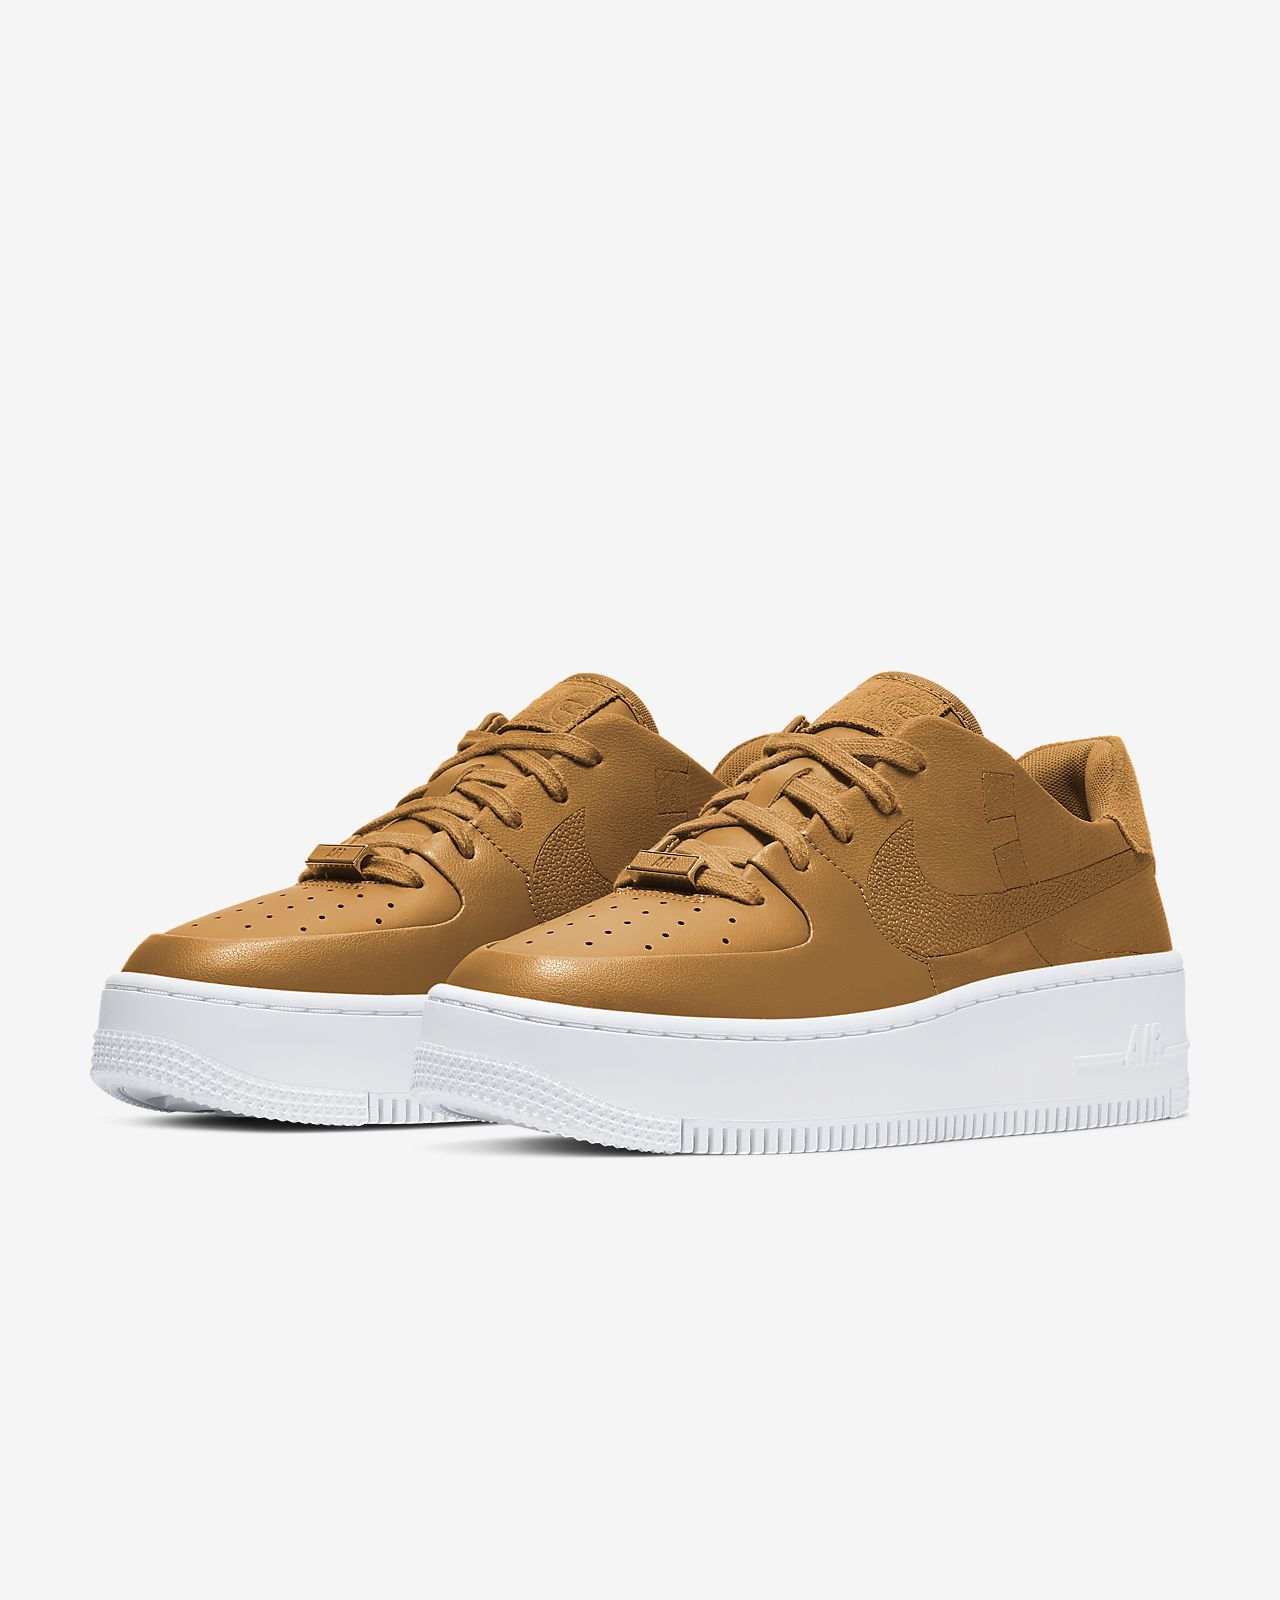 Nike Women's Air Force 1 Sage Shoes